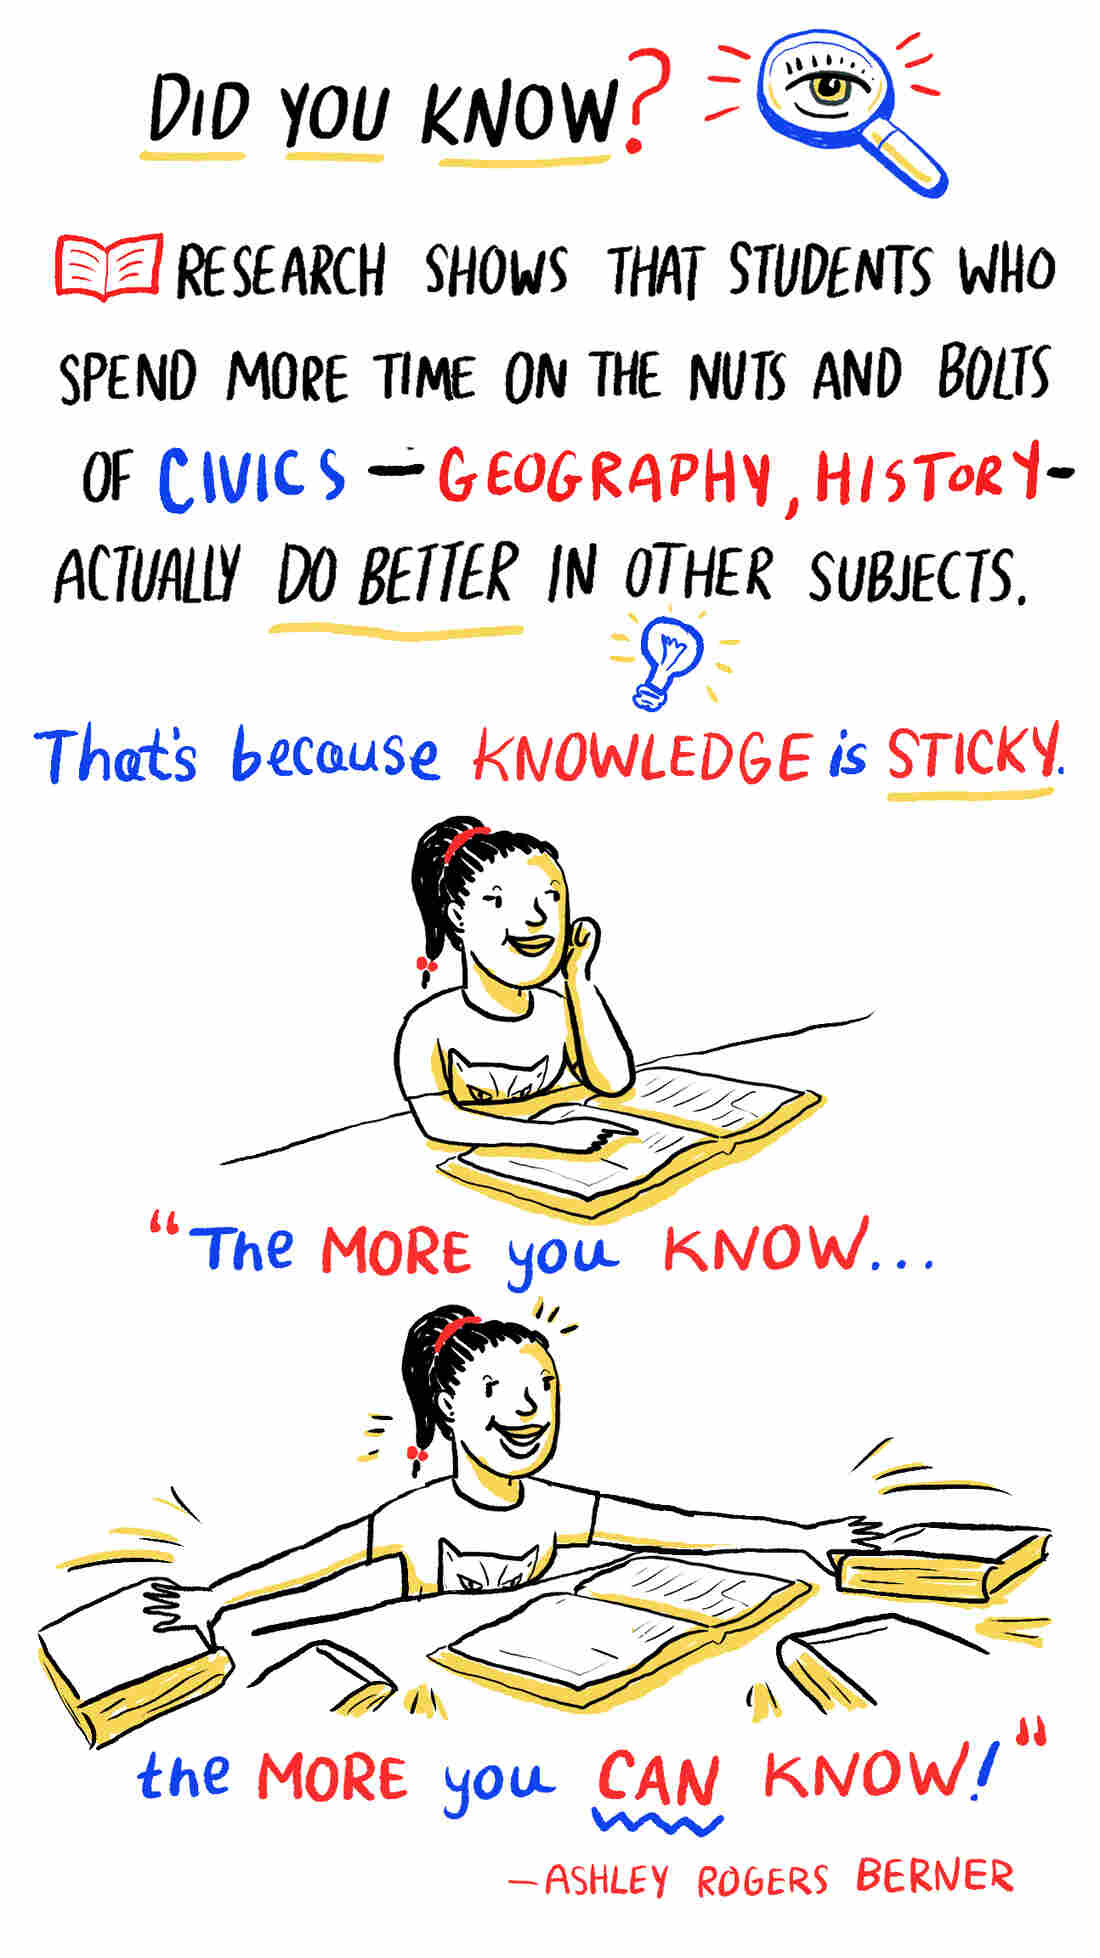 Did you know? Research shows that students who spend more time on the nuts and bolts of civics, like history and geography, actually do better in other subjects.